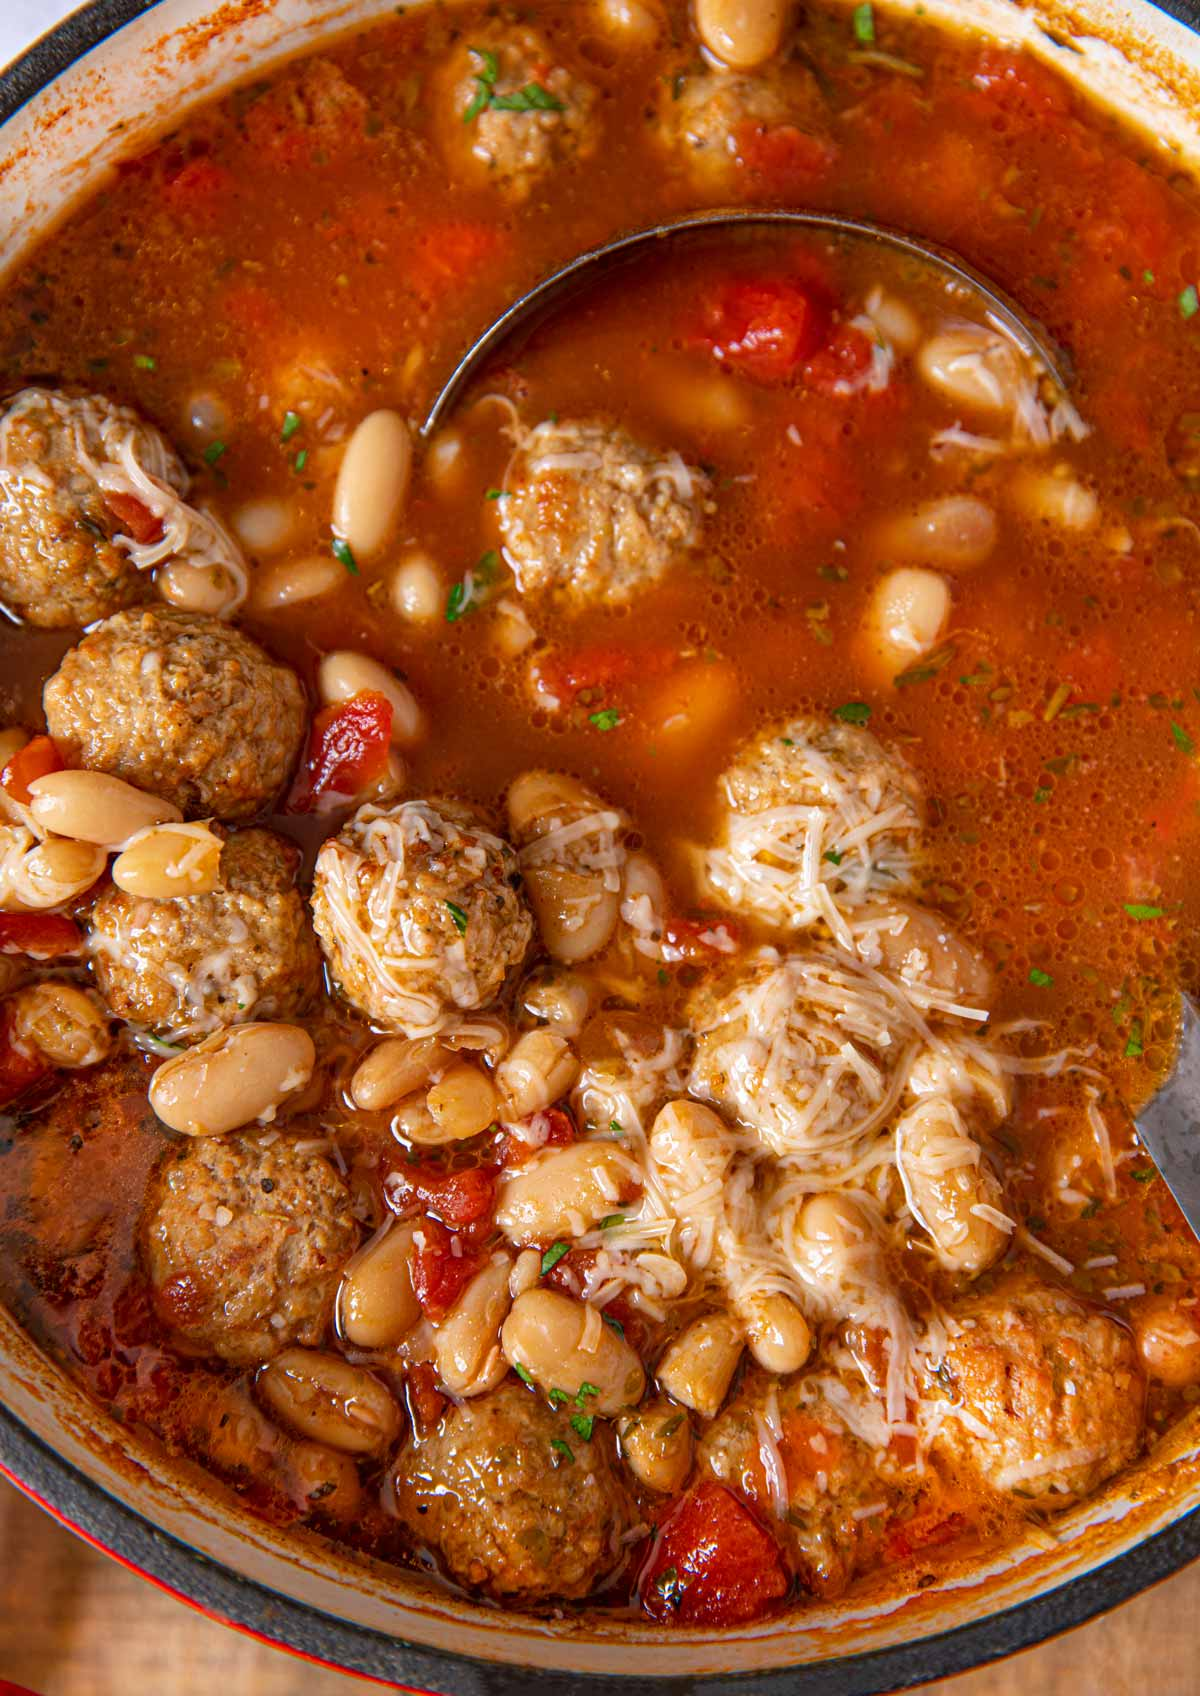 Italian Meatball Soup with ladle